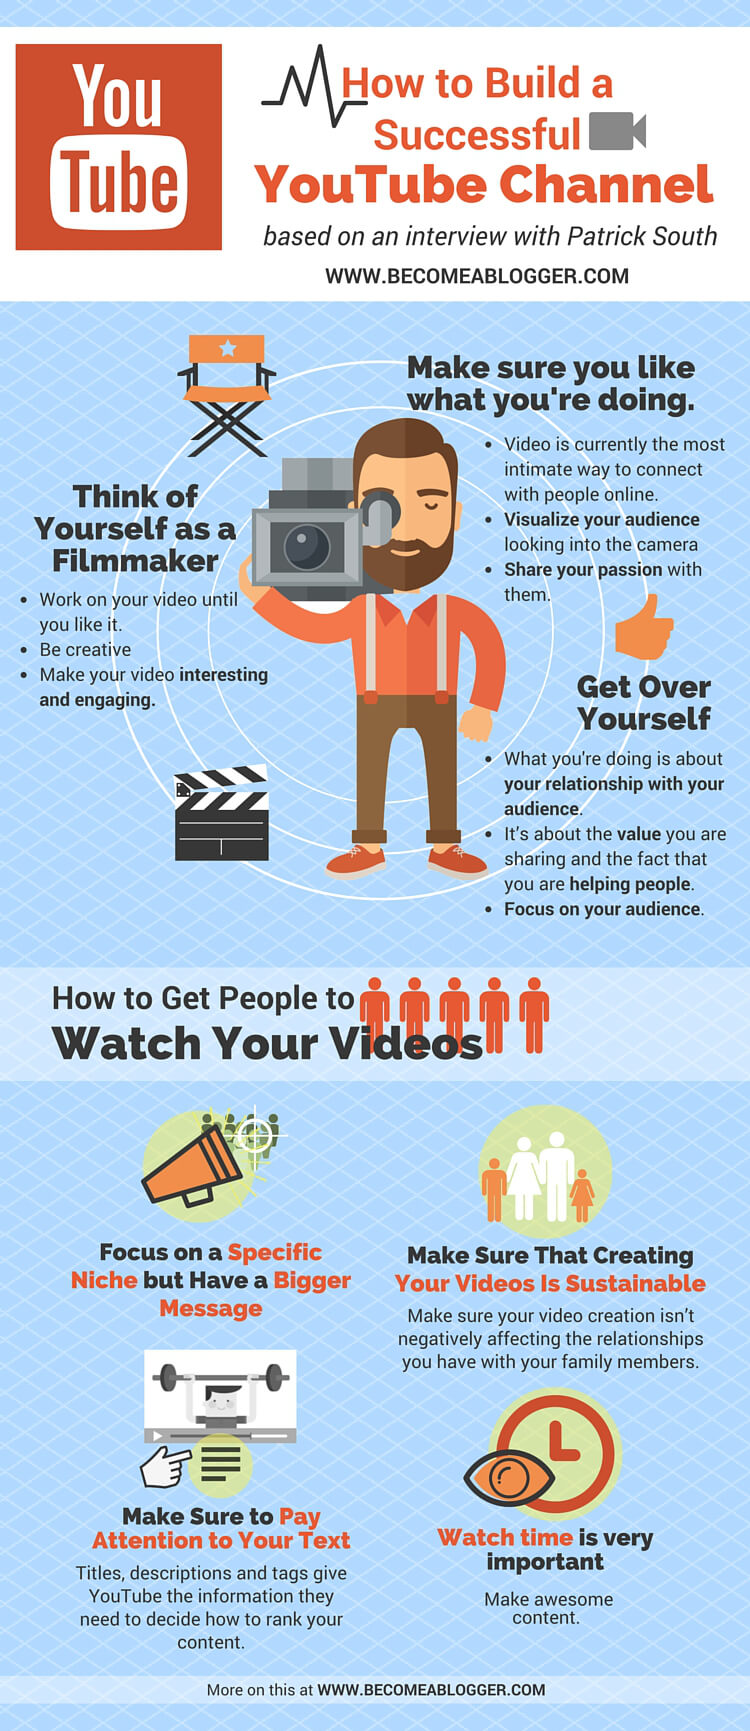 INFOGRAPHIC - How to Build a Successful YouTube Channel - with Patrick South